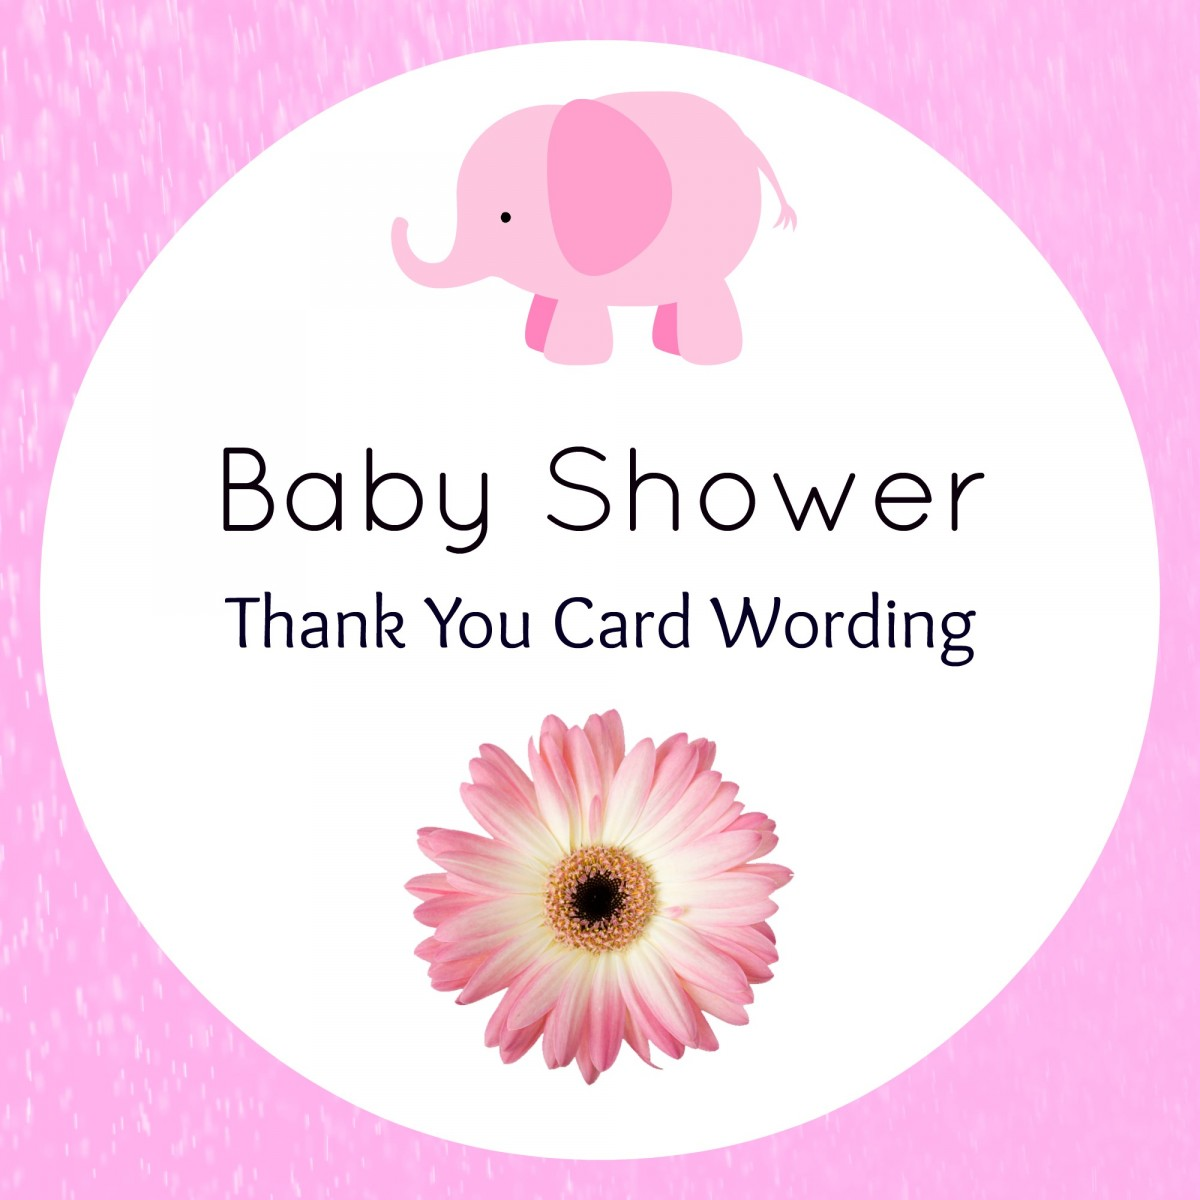 how to write thank you cards for baby shower 28+ what to write on baby shower thank you cards - baby shower thank you card verse ideas shower themes, personalised baby shower thank you card by precious, thank.